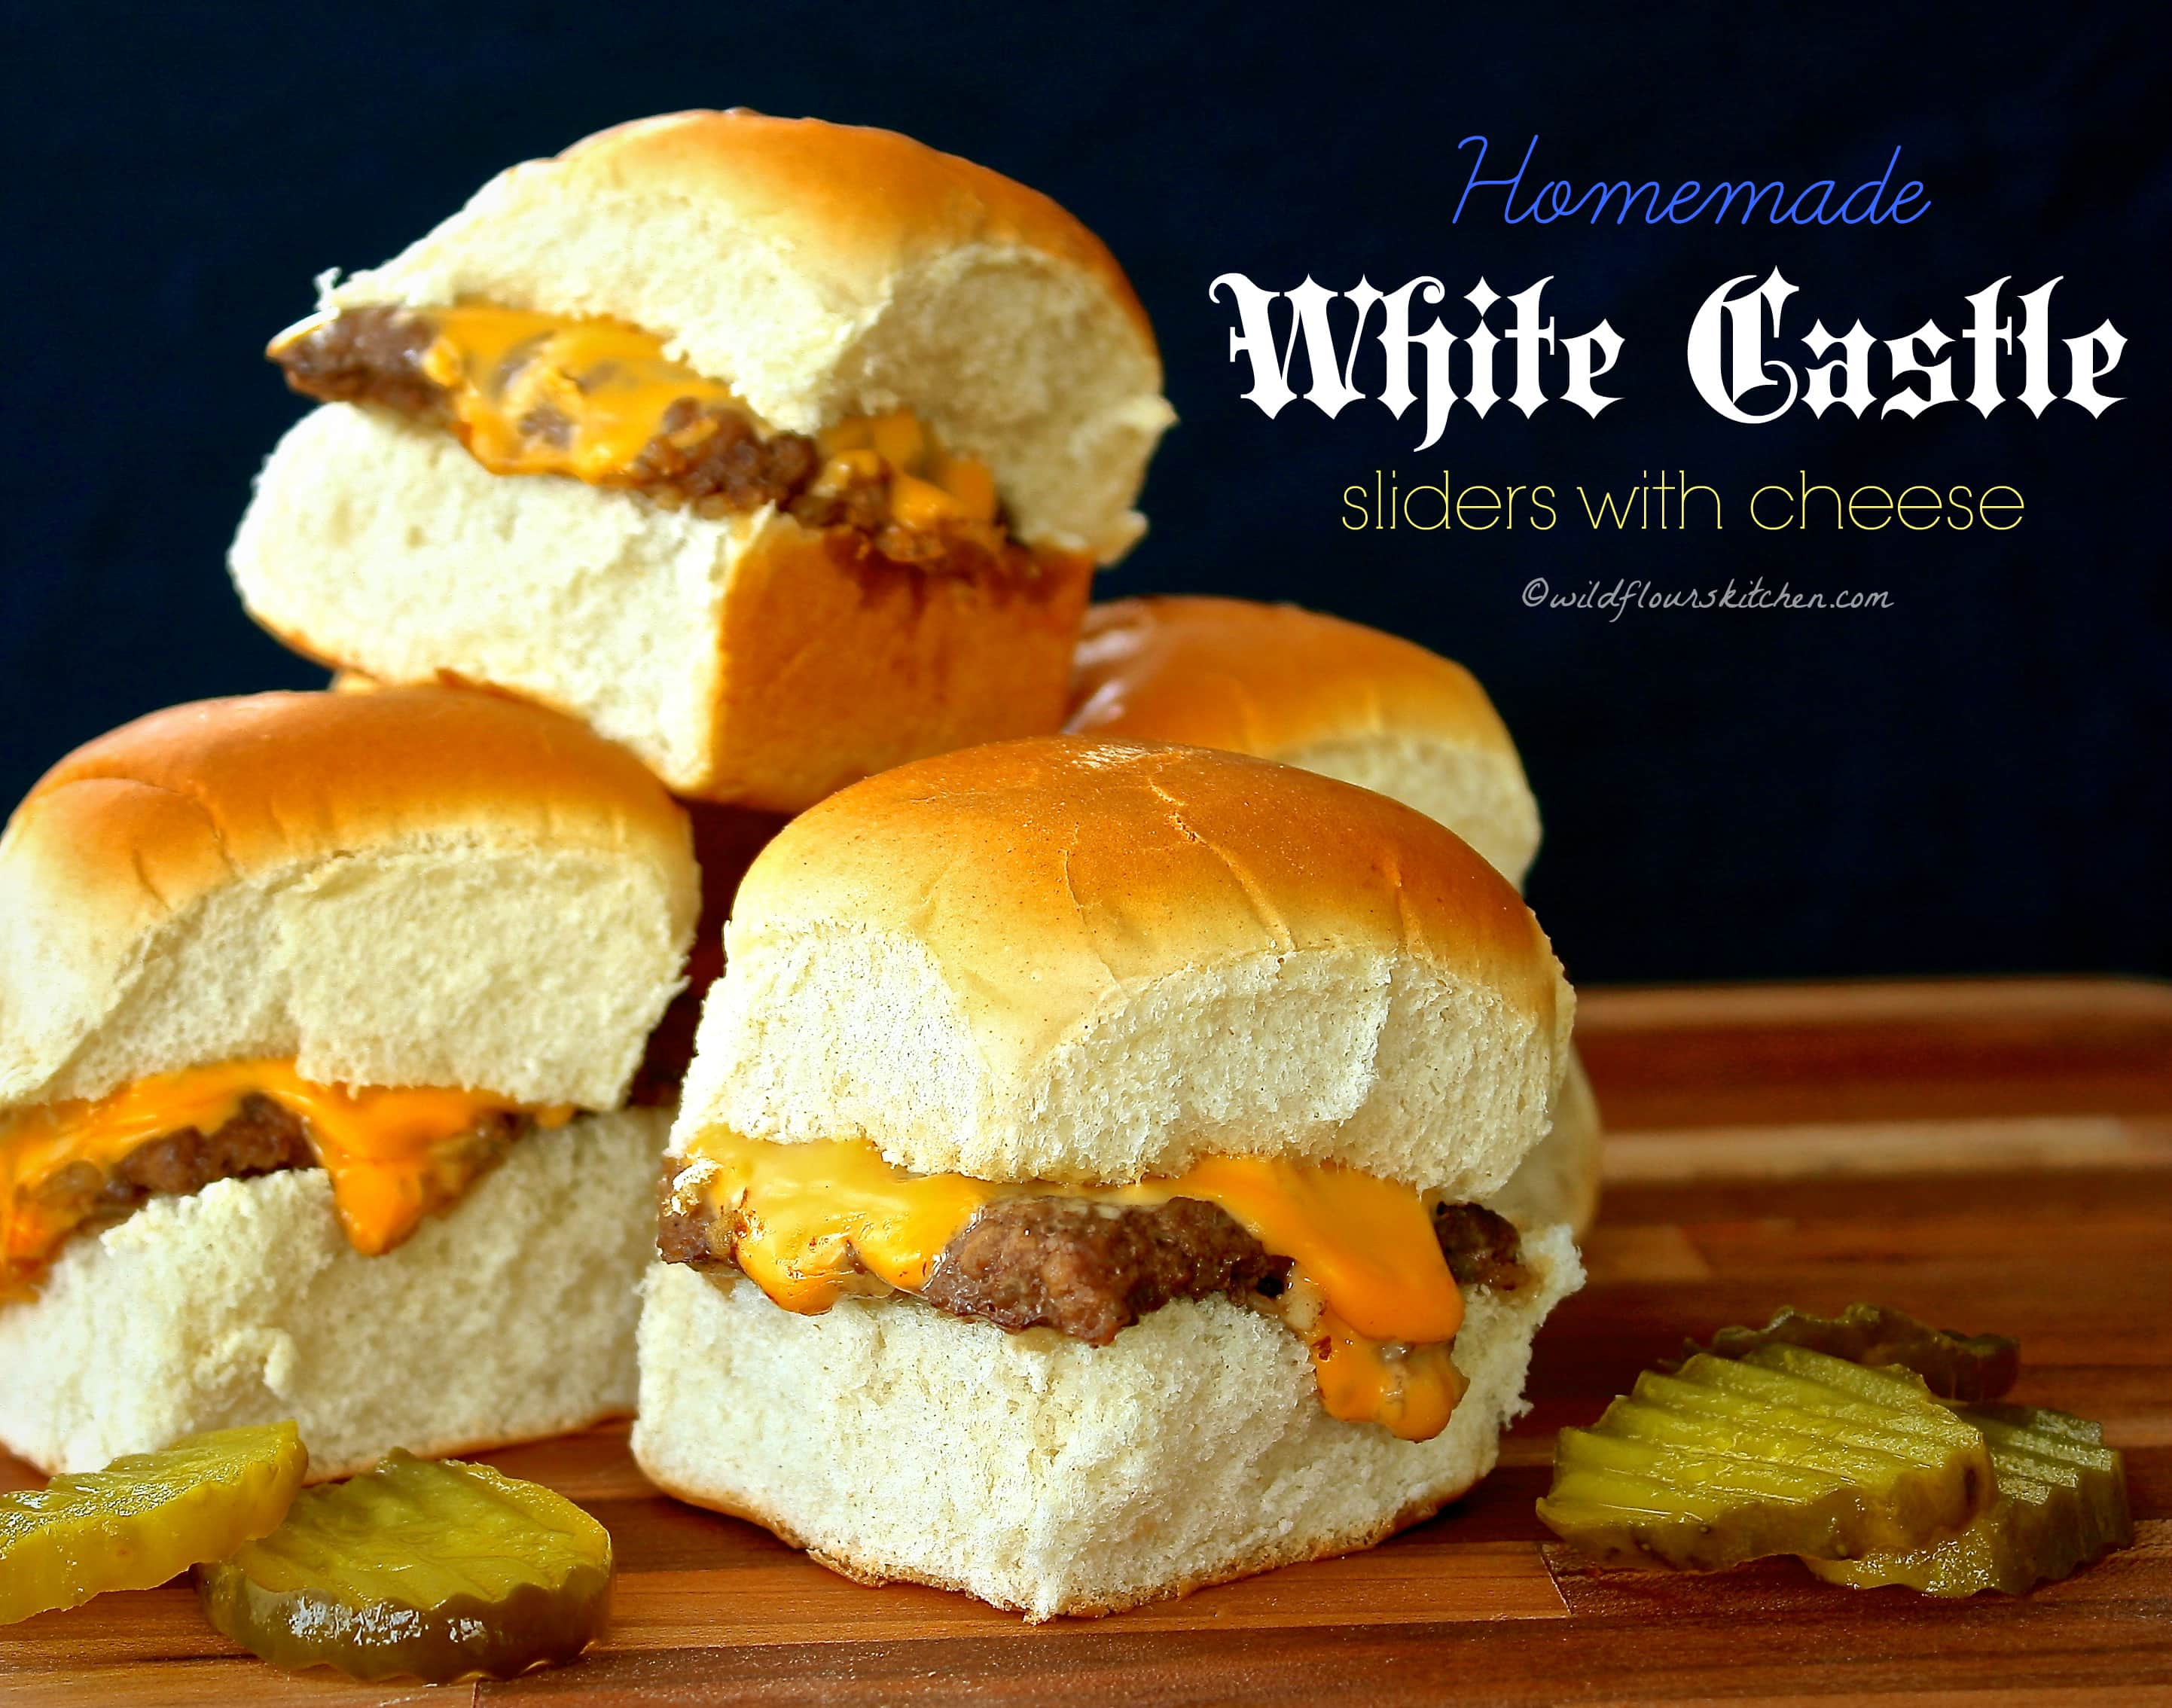 white castle Find white castle in fenton with address, phone number from yahoo us local includes white castle reviews, maps & directions to white castle in fenton and more from yahoo us local.